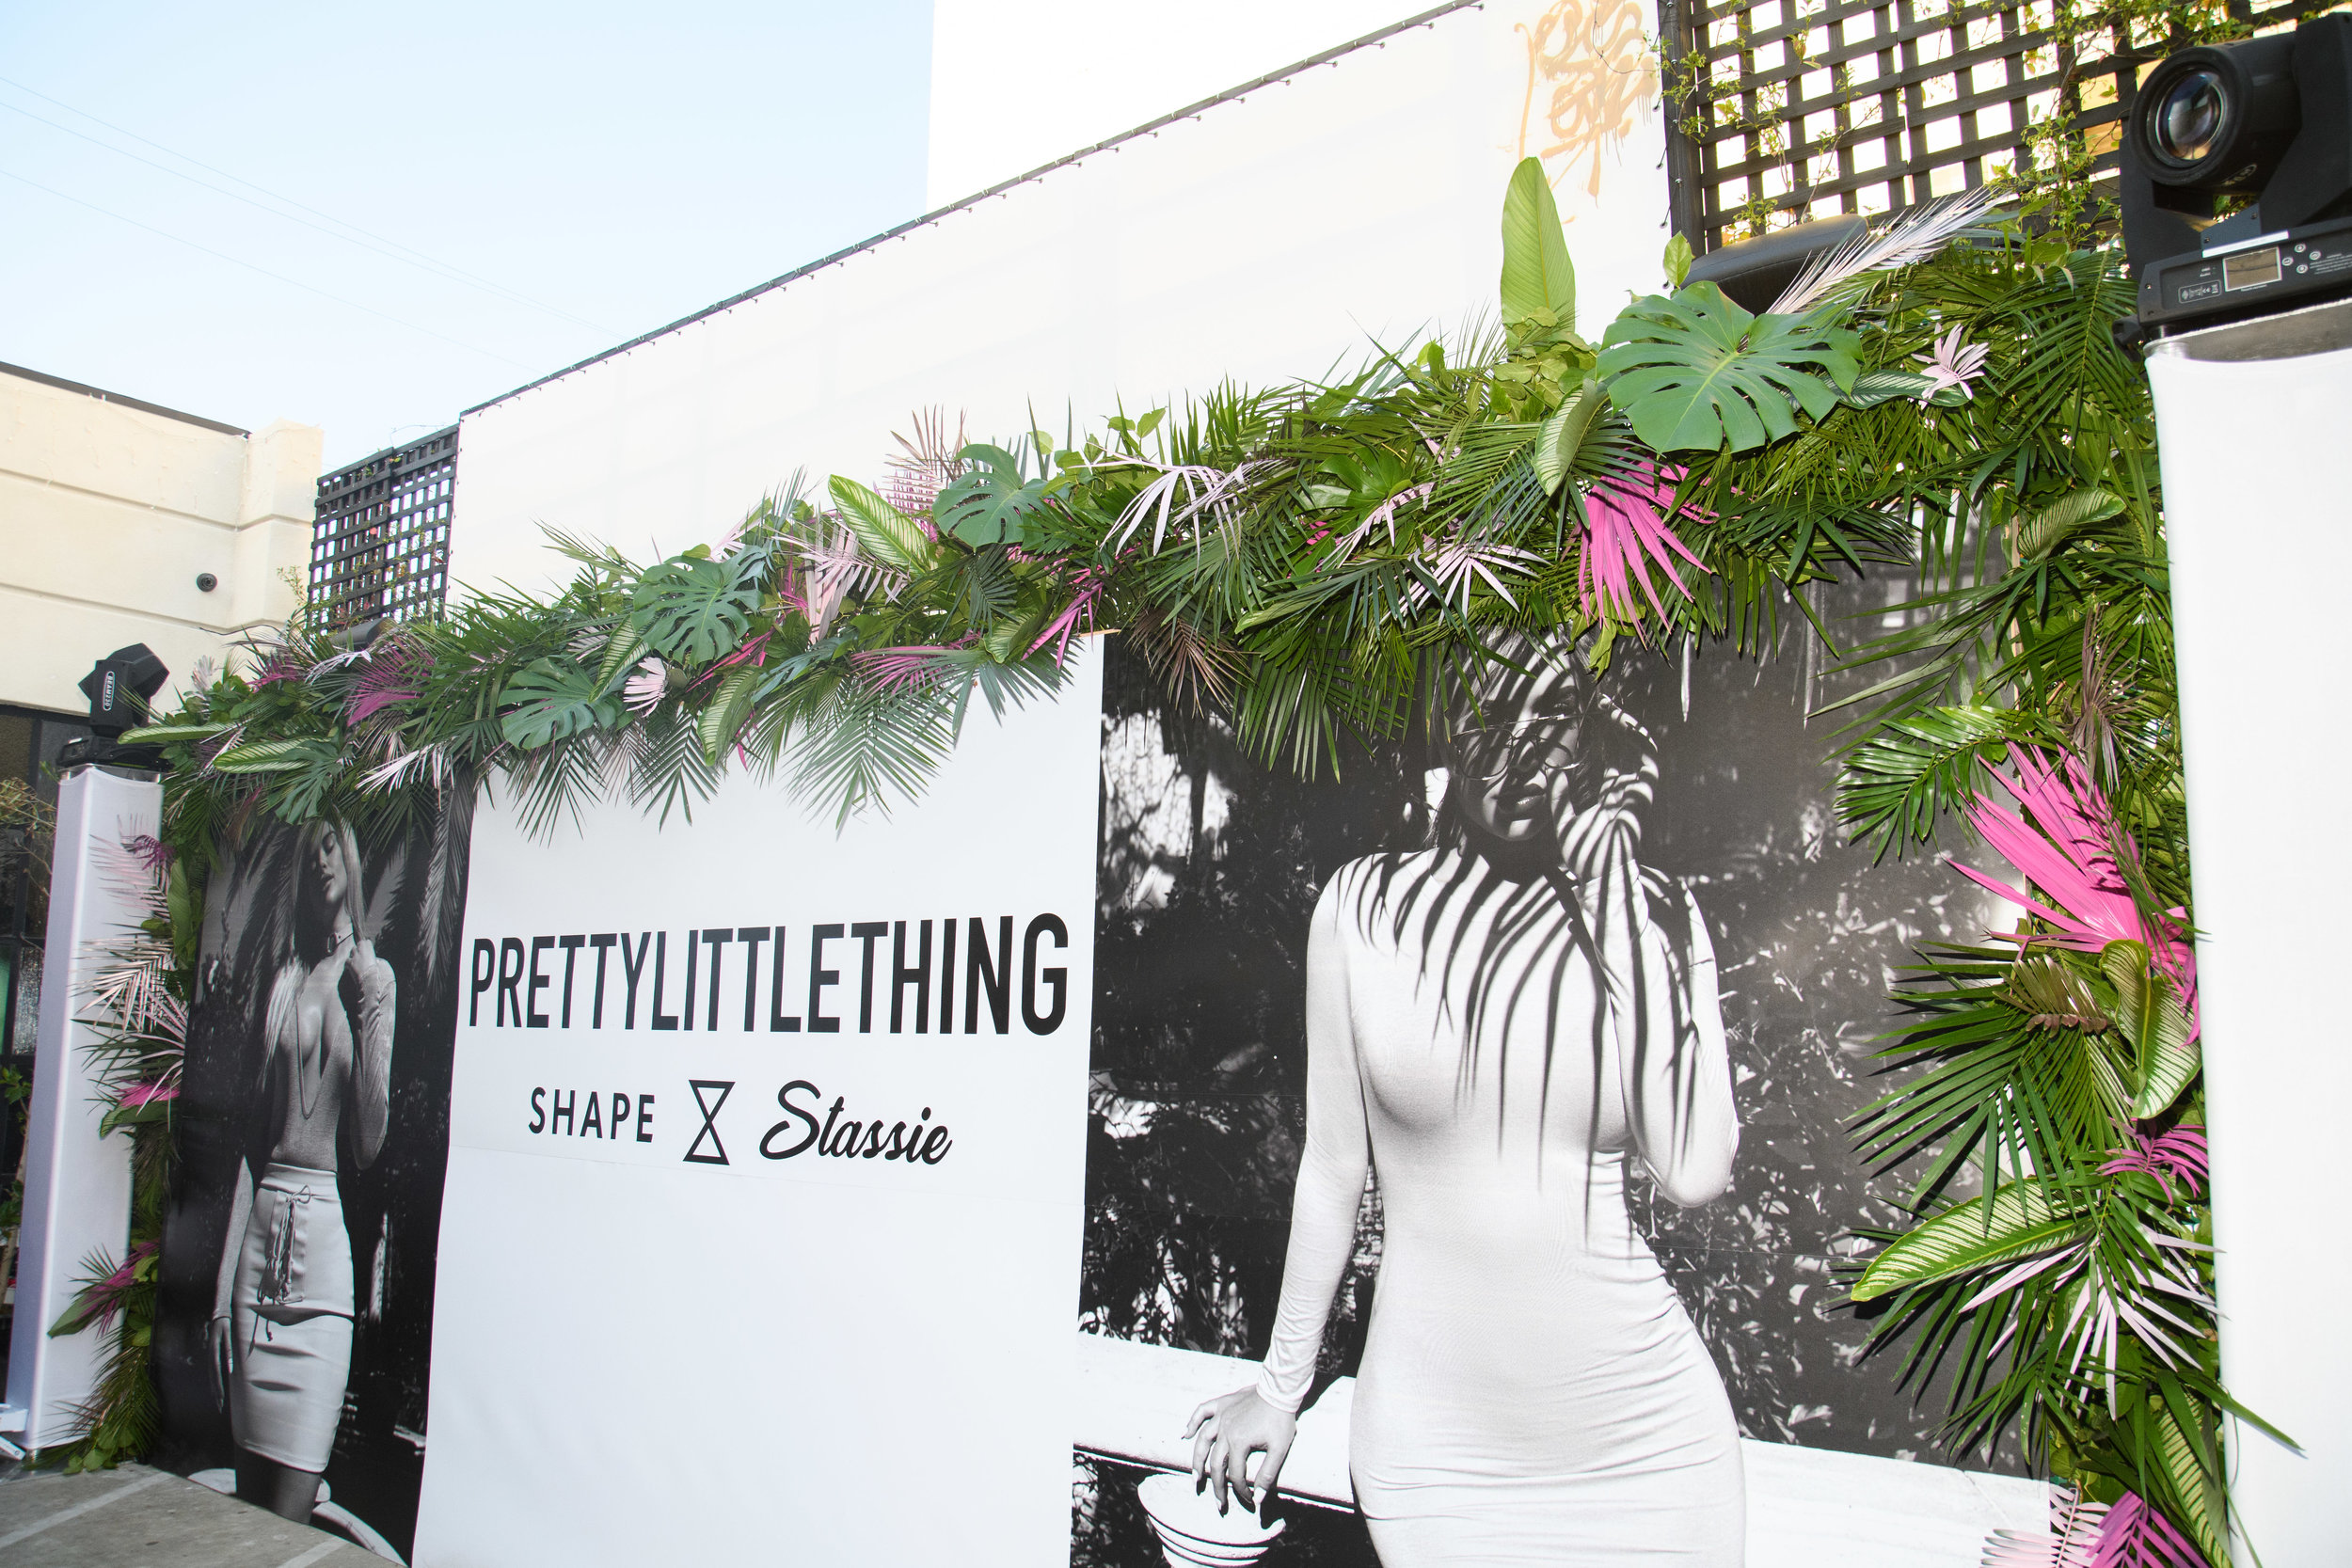 PrettyLittleThing New PLT Shape Collection with Stassie Celebrity Launch Party step and repeat with pink painted palm fronds.jpg